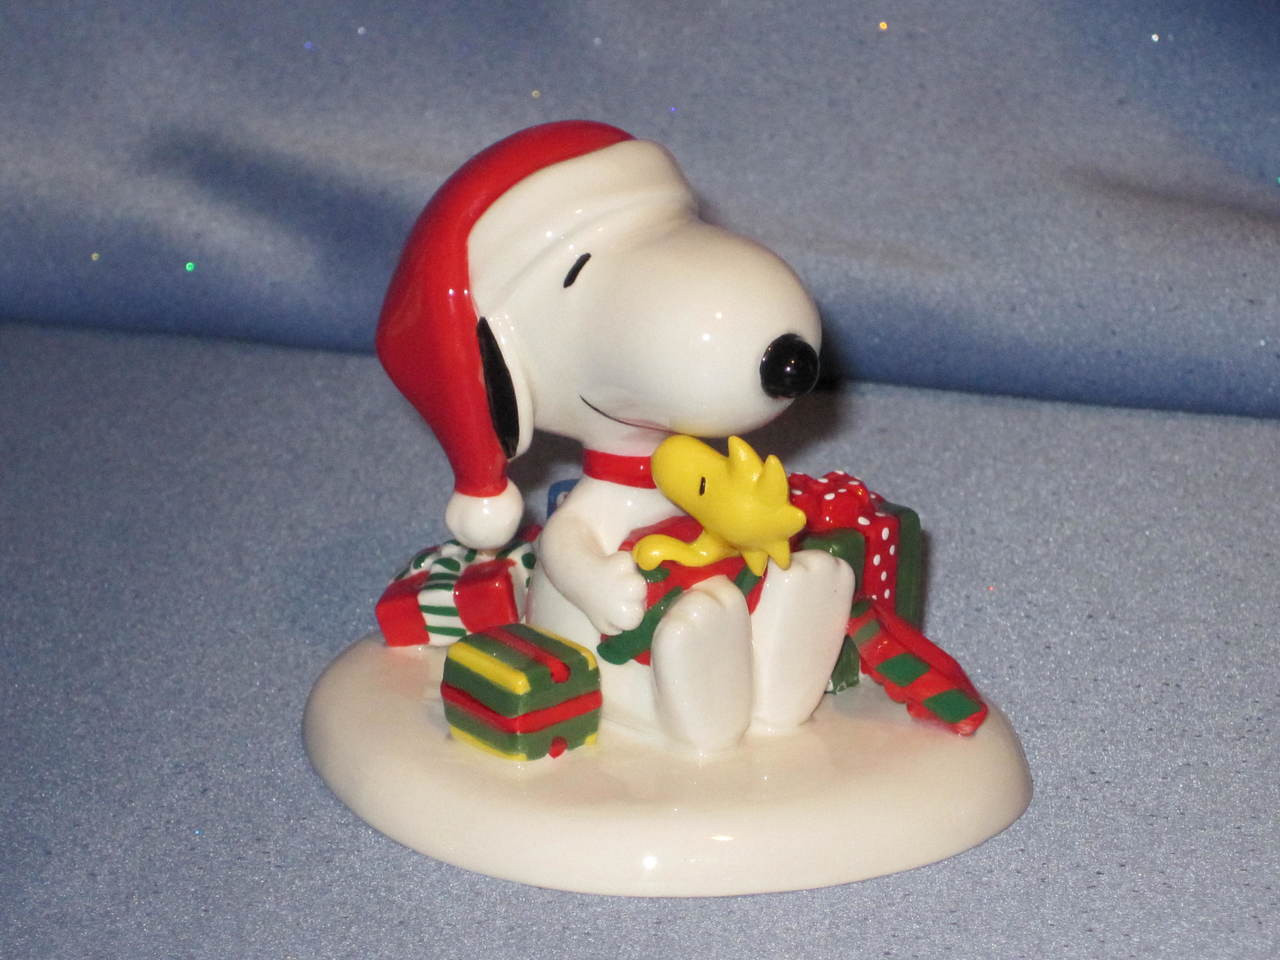 Snoopy and Woodstock Figurine by Peanuts.